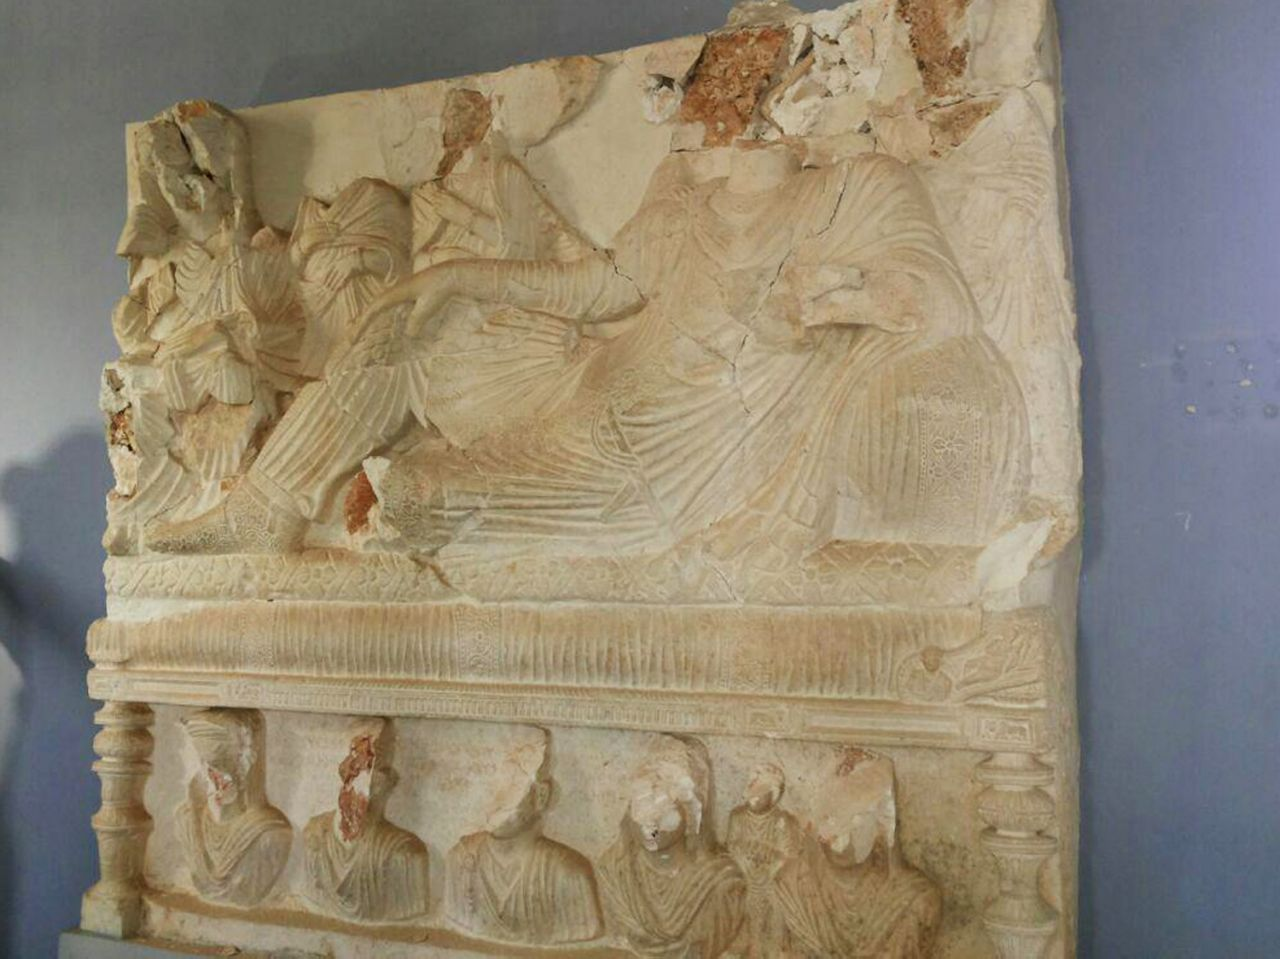 Near East: Grim new details of damage at Palmyra museum